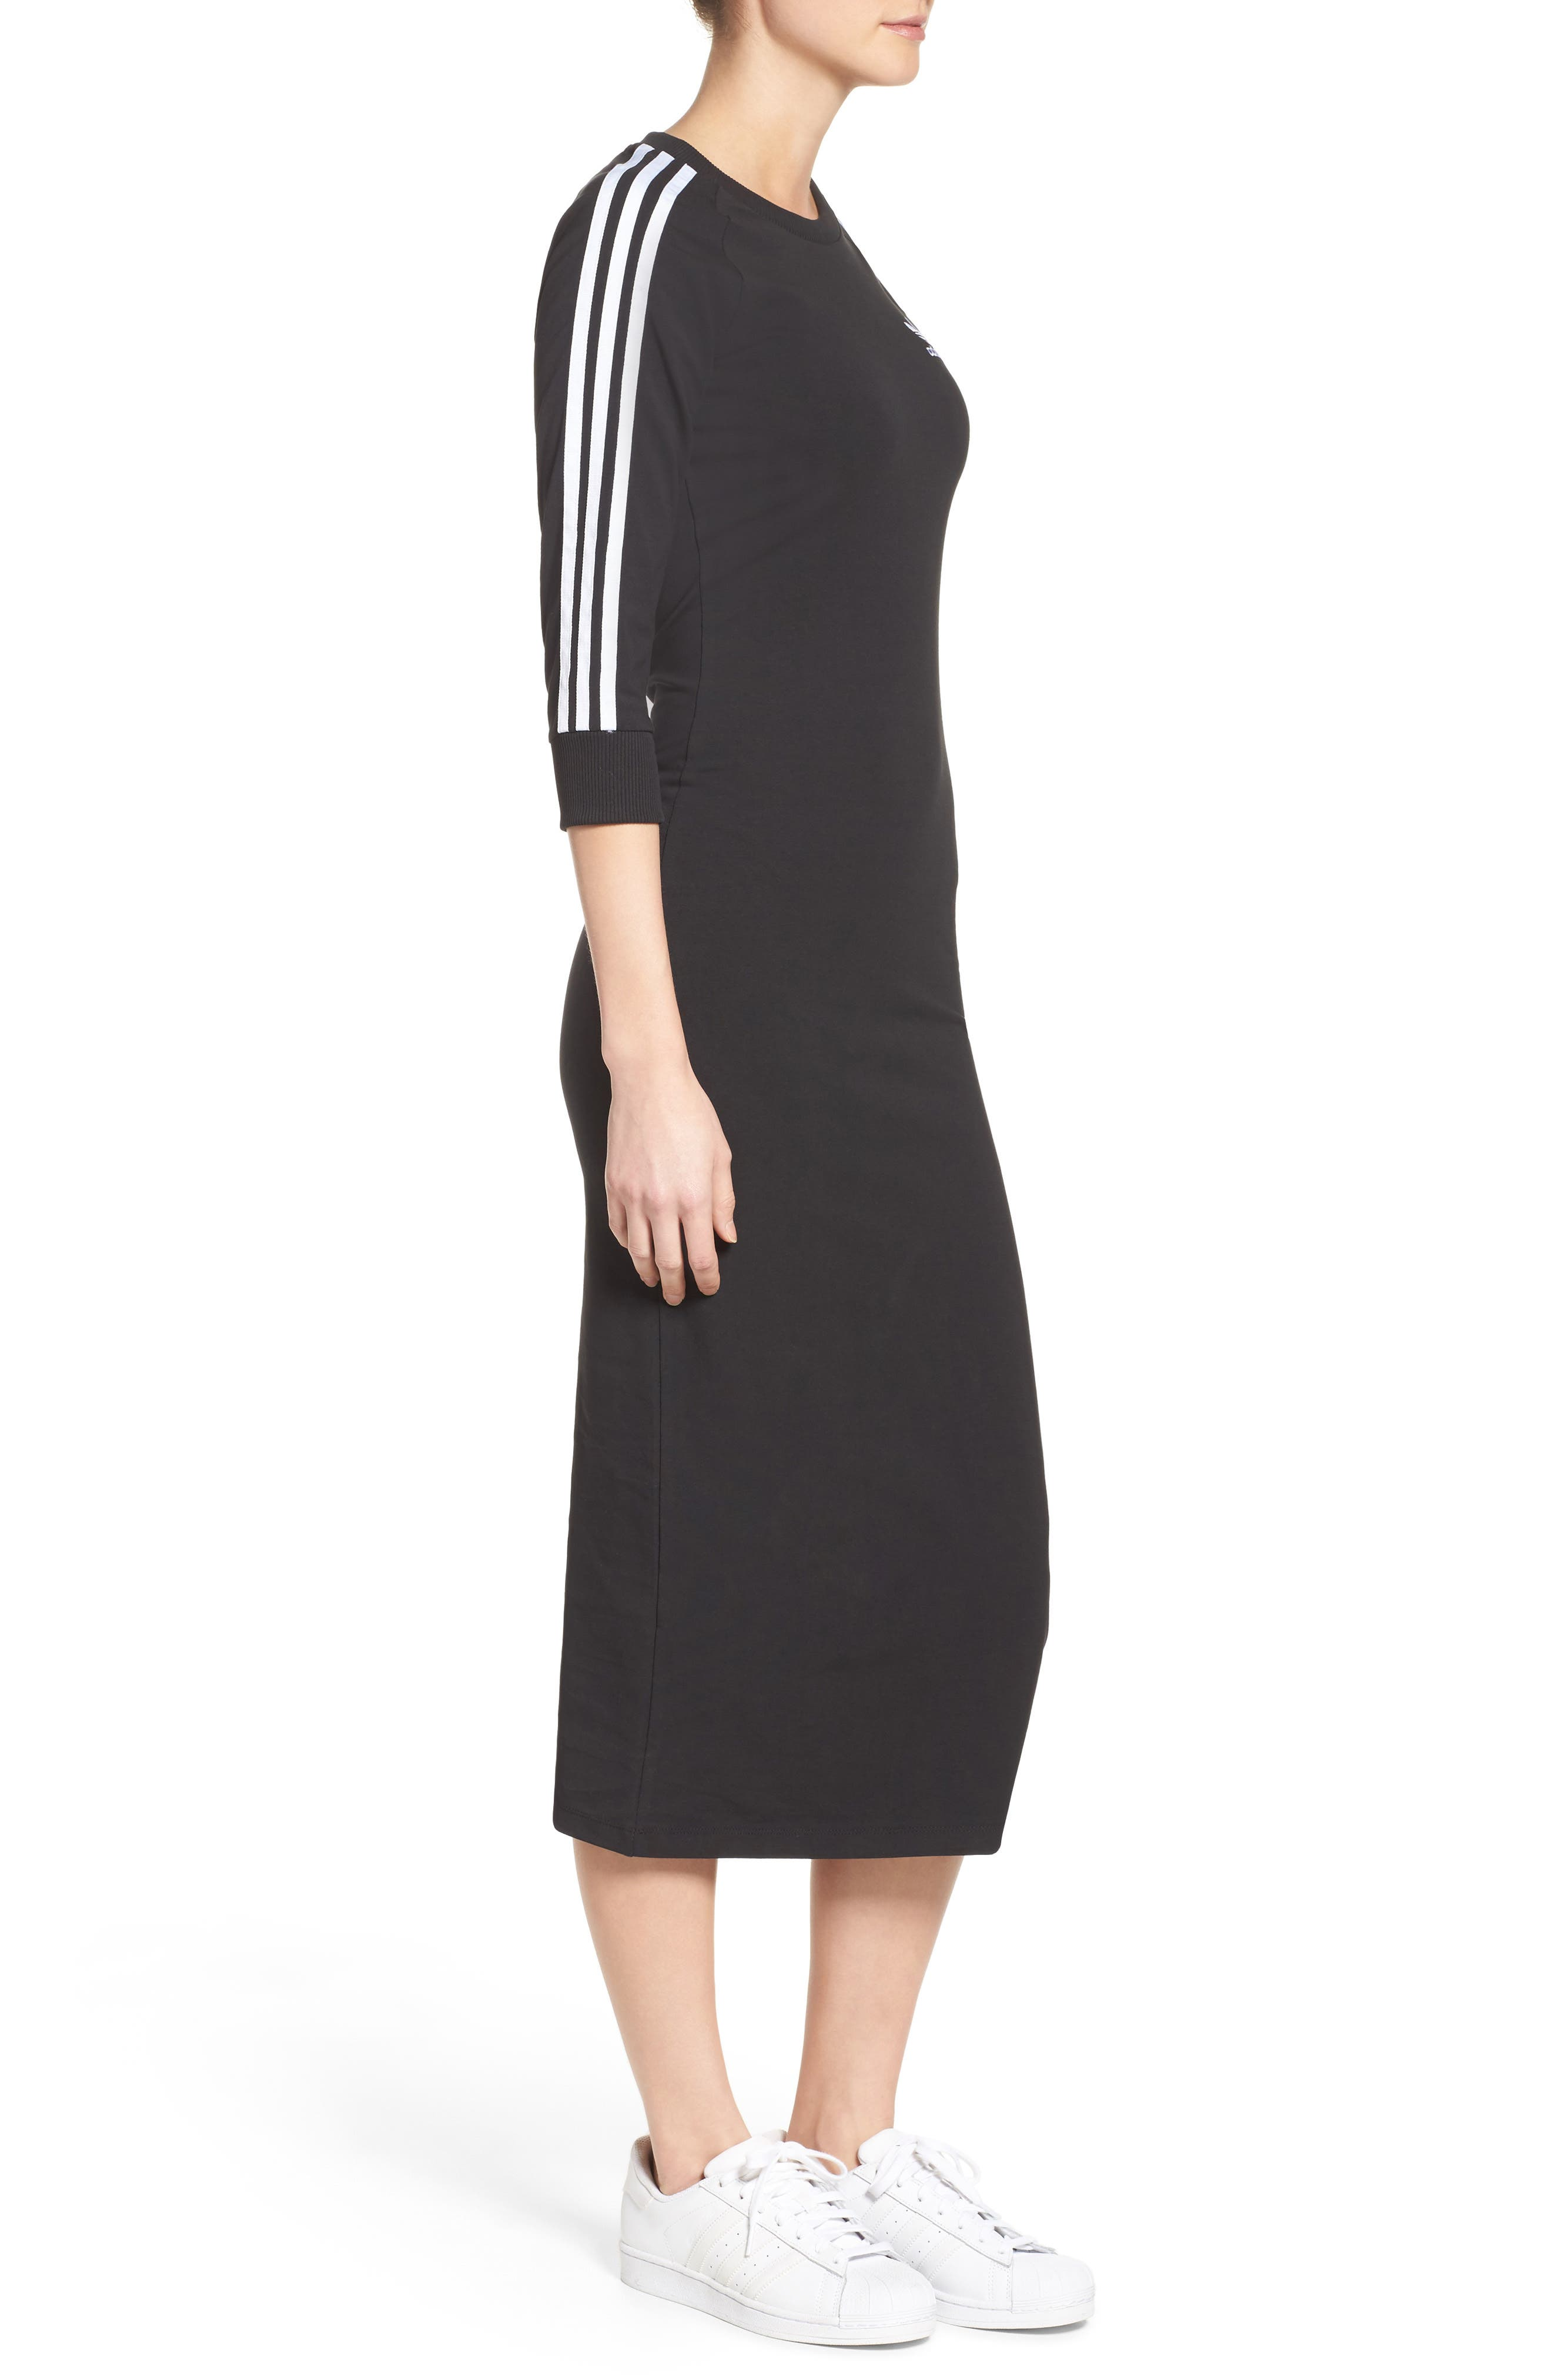 Alternate Image 3  - adidas Originals 3-Stripes Dress